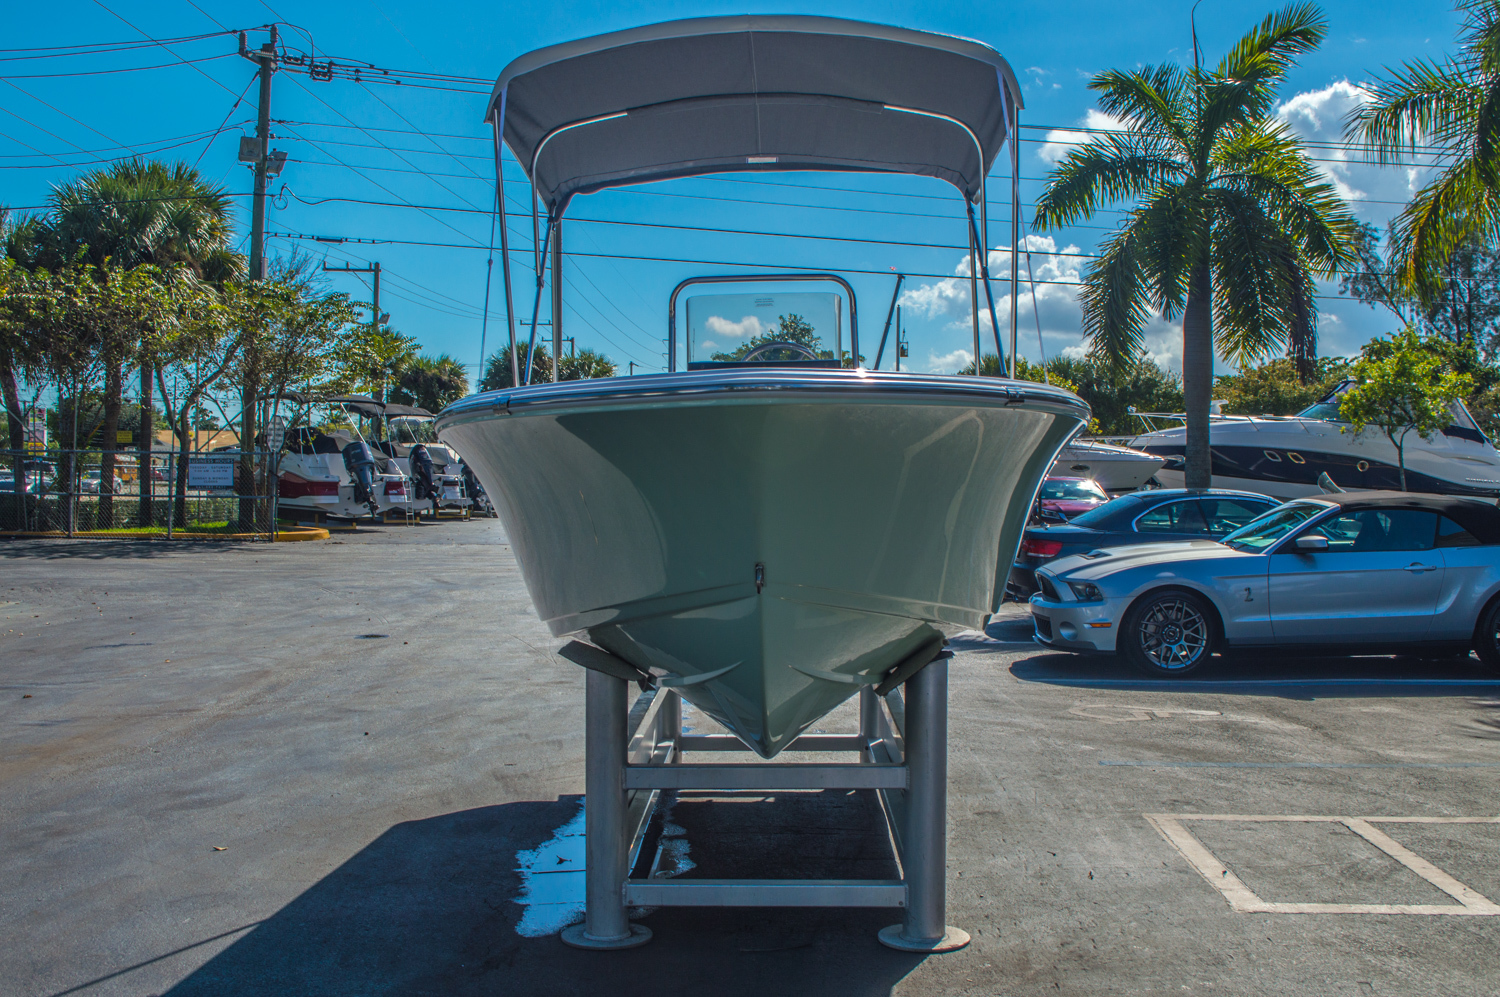 Thumbnail 2 for New 2016 Sportsman 17 Island Reef boat for sale in West Palm Beach, FL